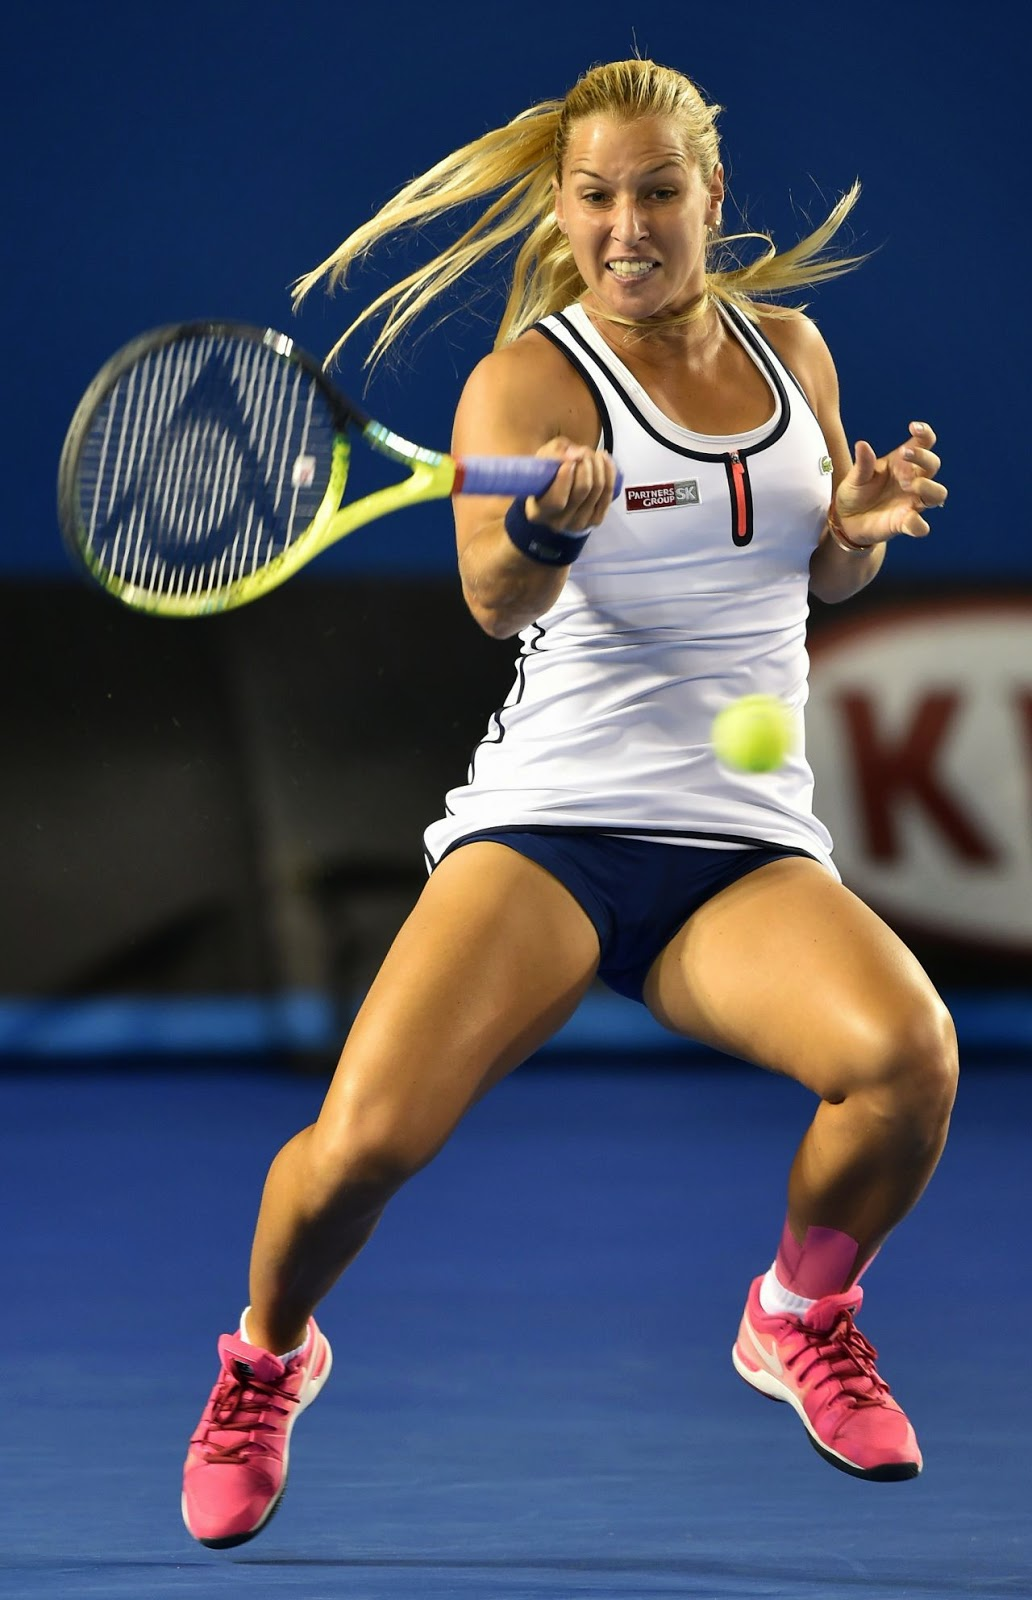 Dominika Cibulkova Slovak Professional Tennis Player very hot and sexy images Wallpapers Fee Download